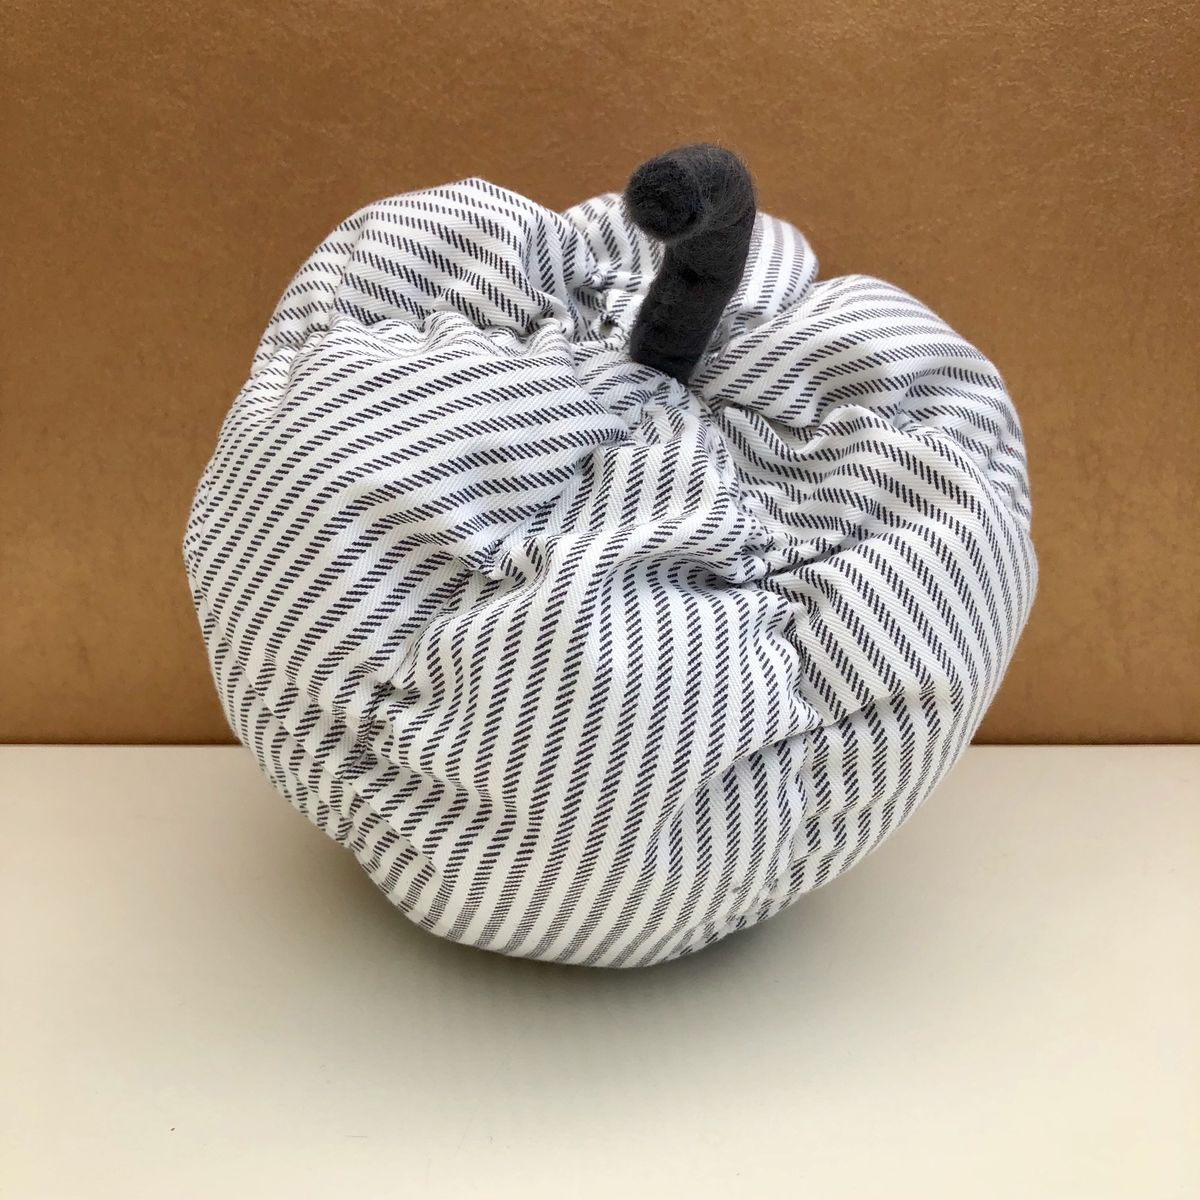 Decorative patterned pumpkin - grey stripes - product images  of